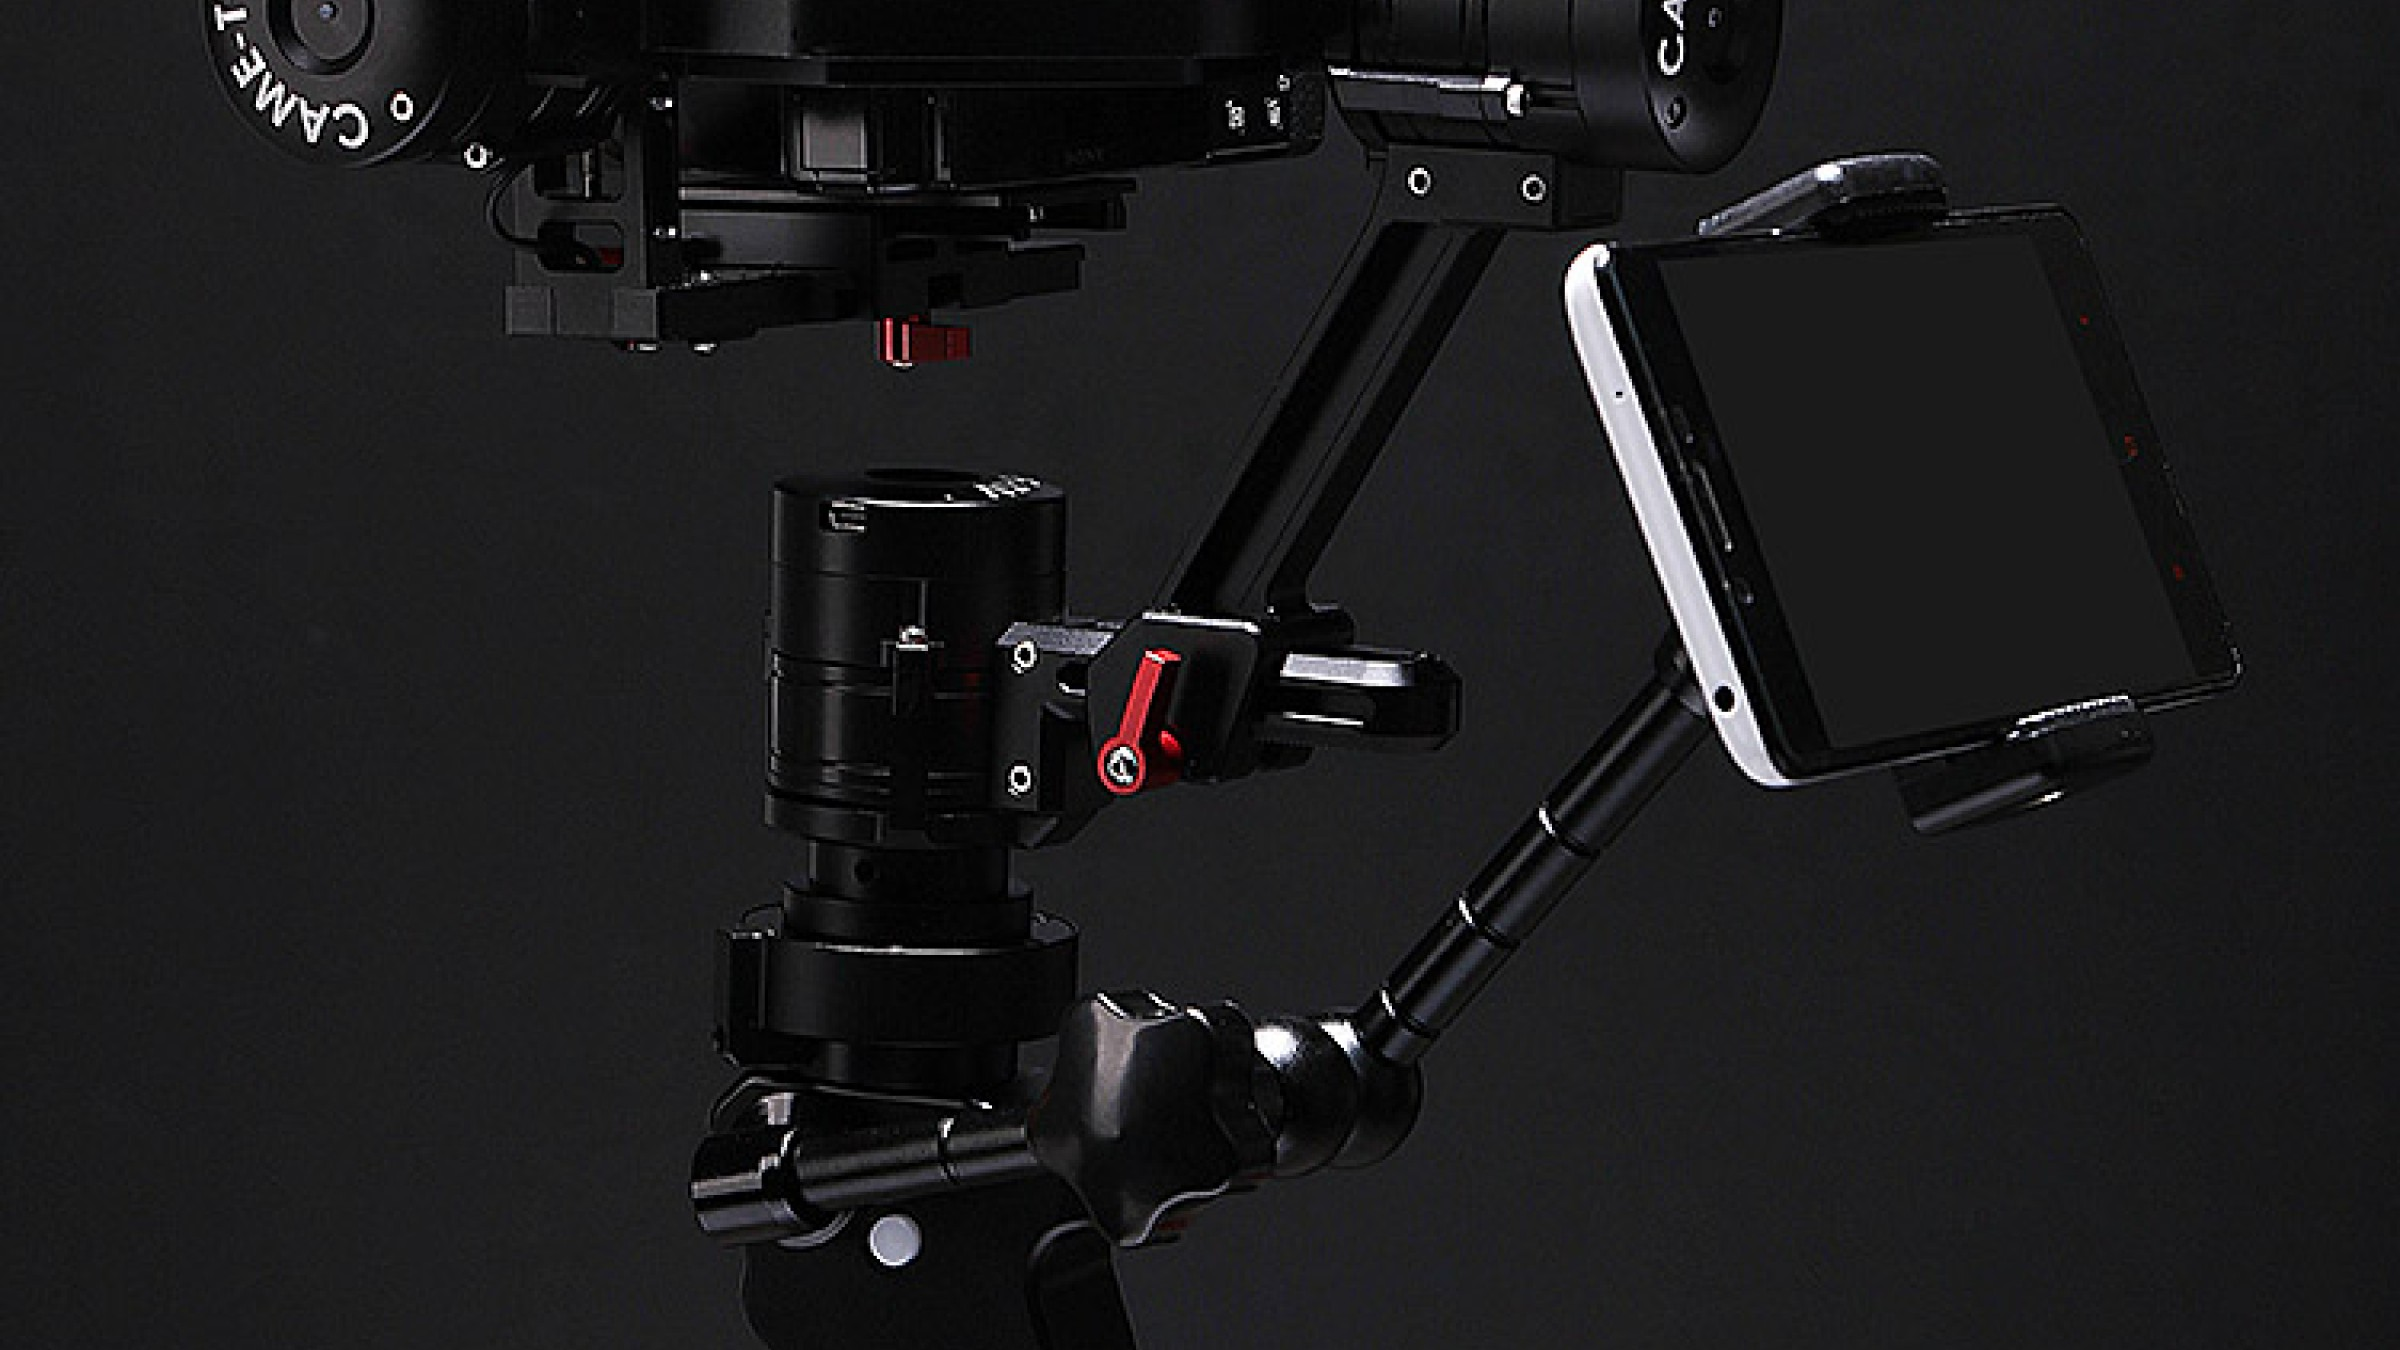 CAME-TV Releases Interesting New Gimbal for Easy One-Hand Operation